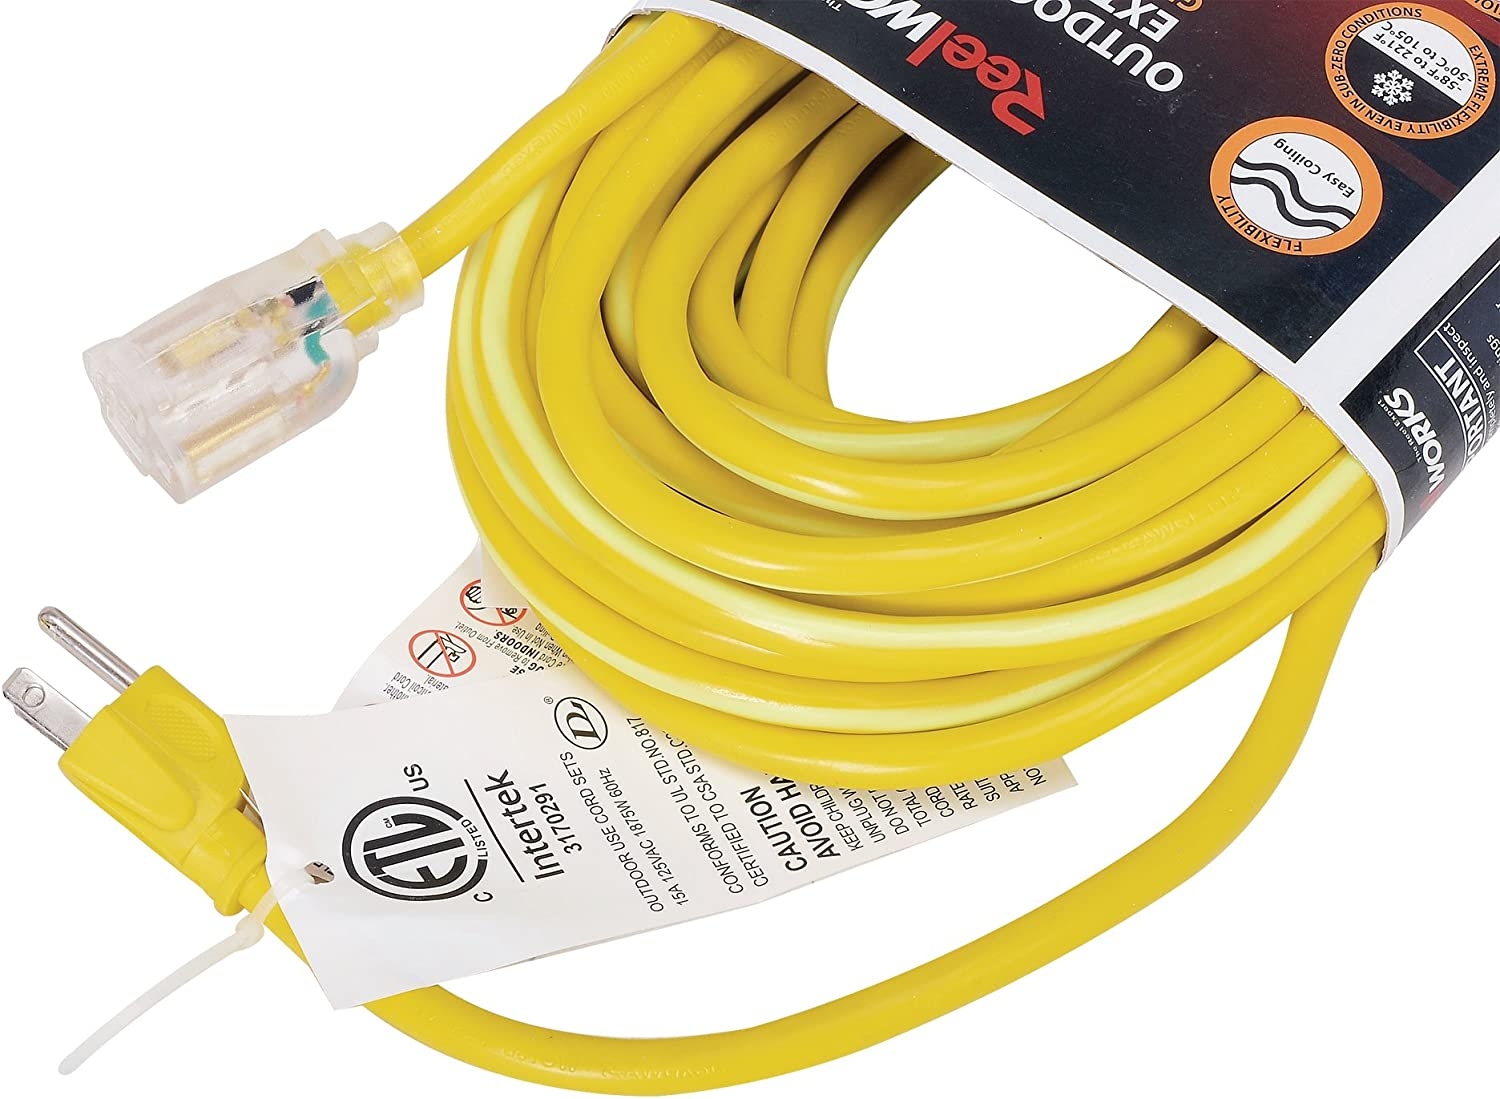 REELWORKS Extension Cord Long 50 FT Heavy Duty Commercial Premium Grade 14AWG SJTOW Cable Single Light Up Tap w//Glow Strip For Indoor /& Outdoor Ultra Flexible Weather UV Oil Acid Ozone Resistant